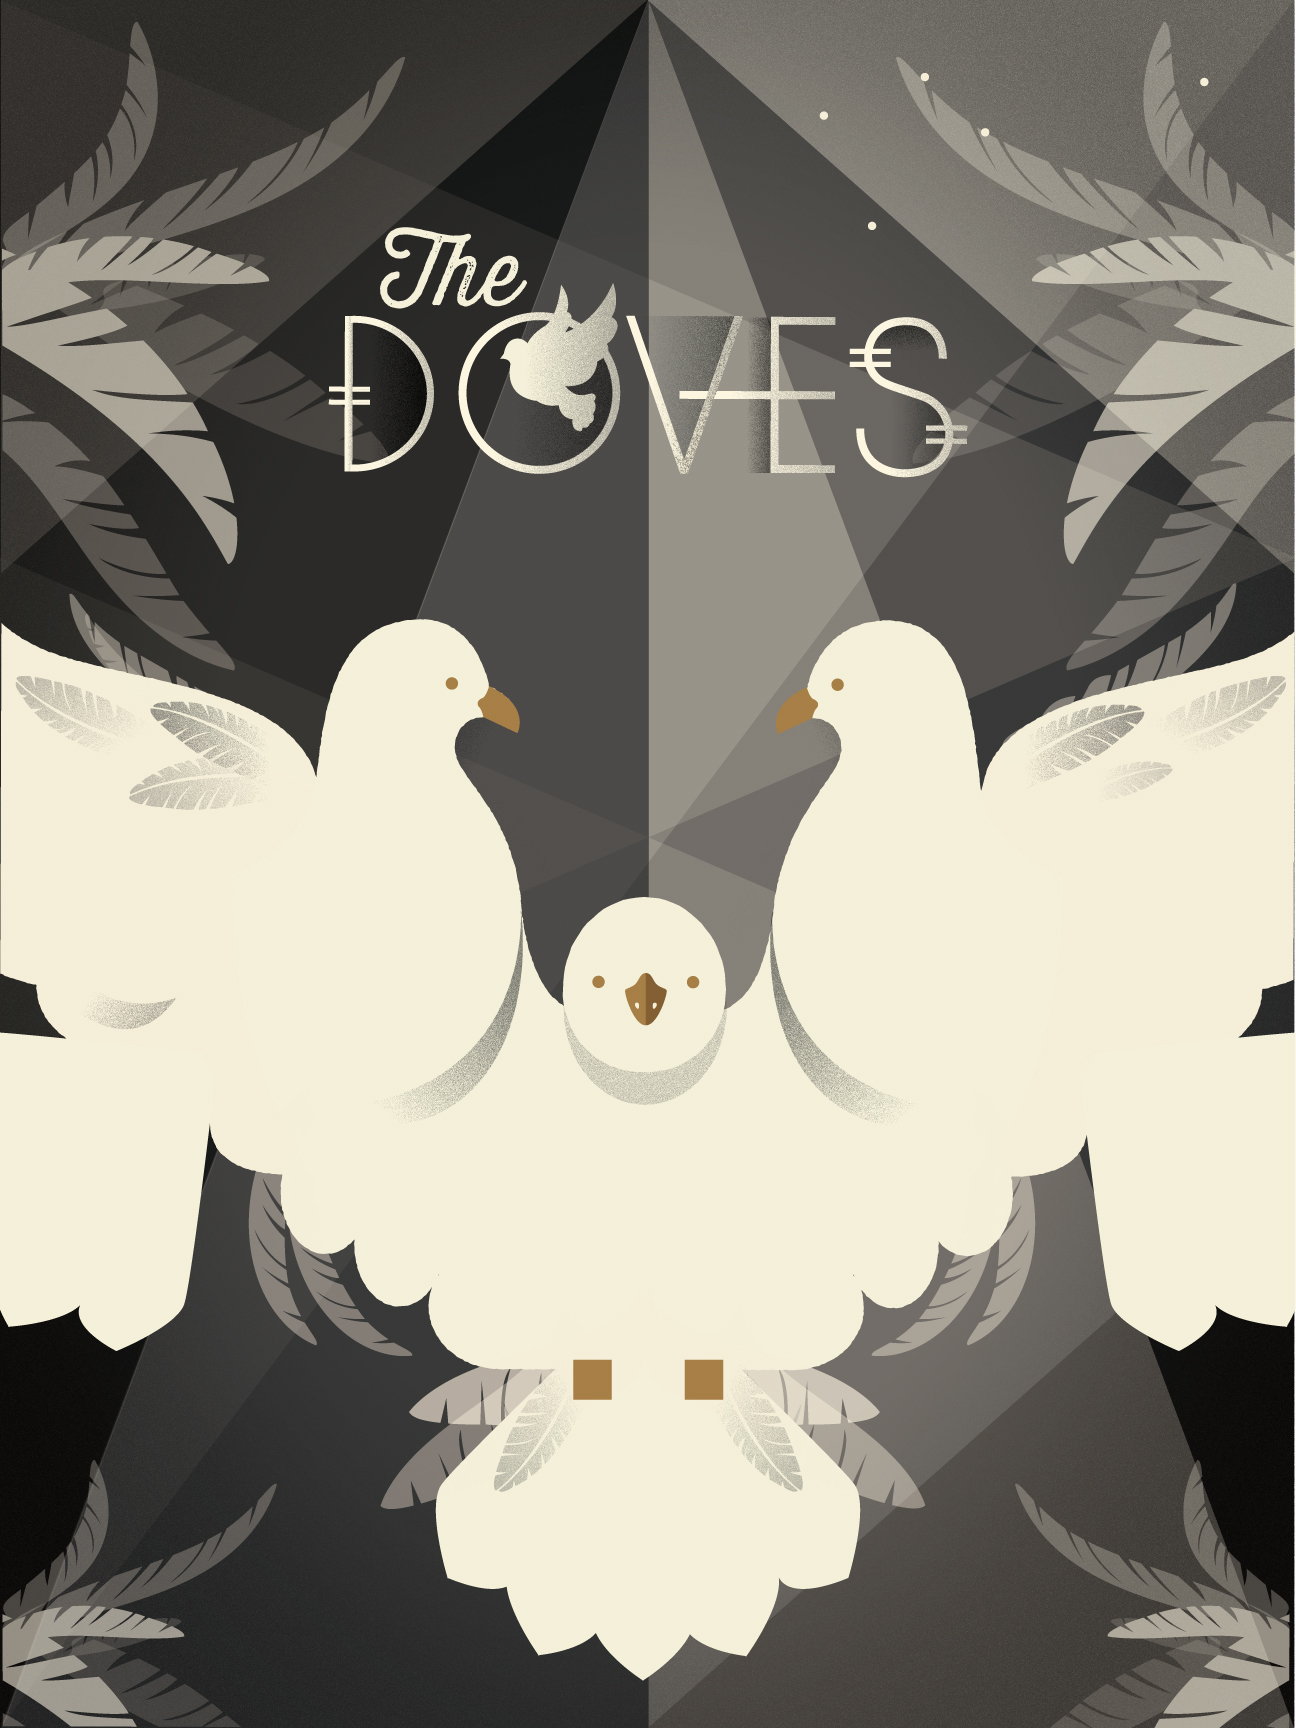 The Doves - image 2 - student project